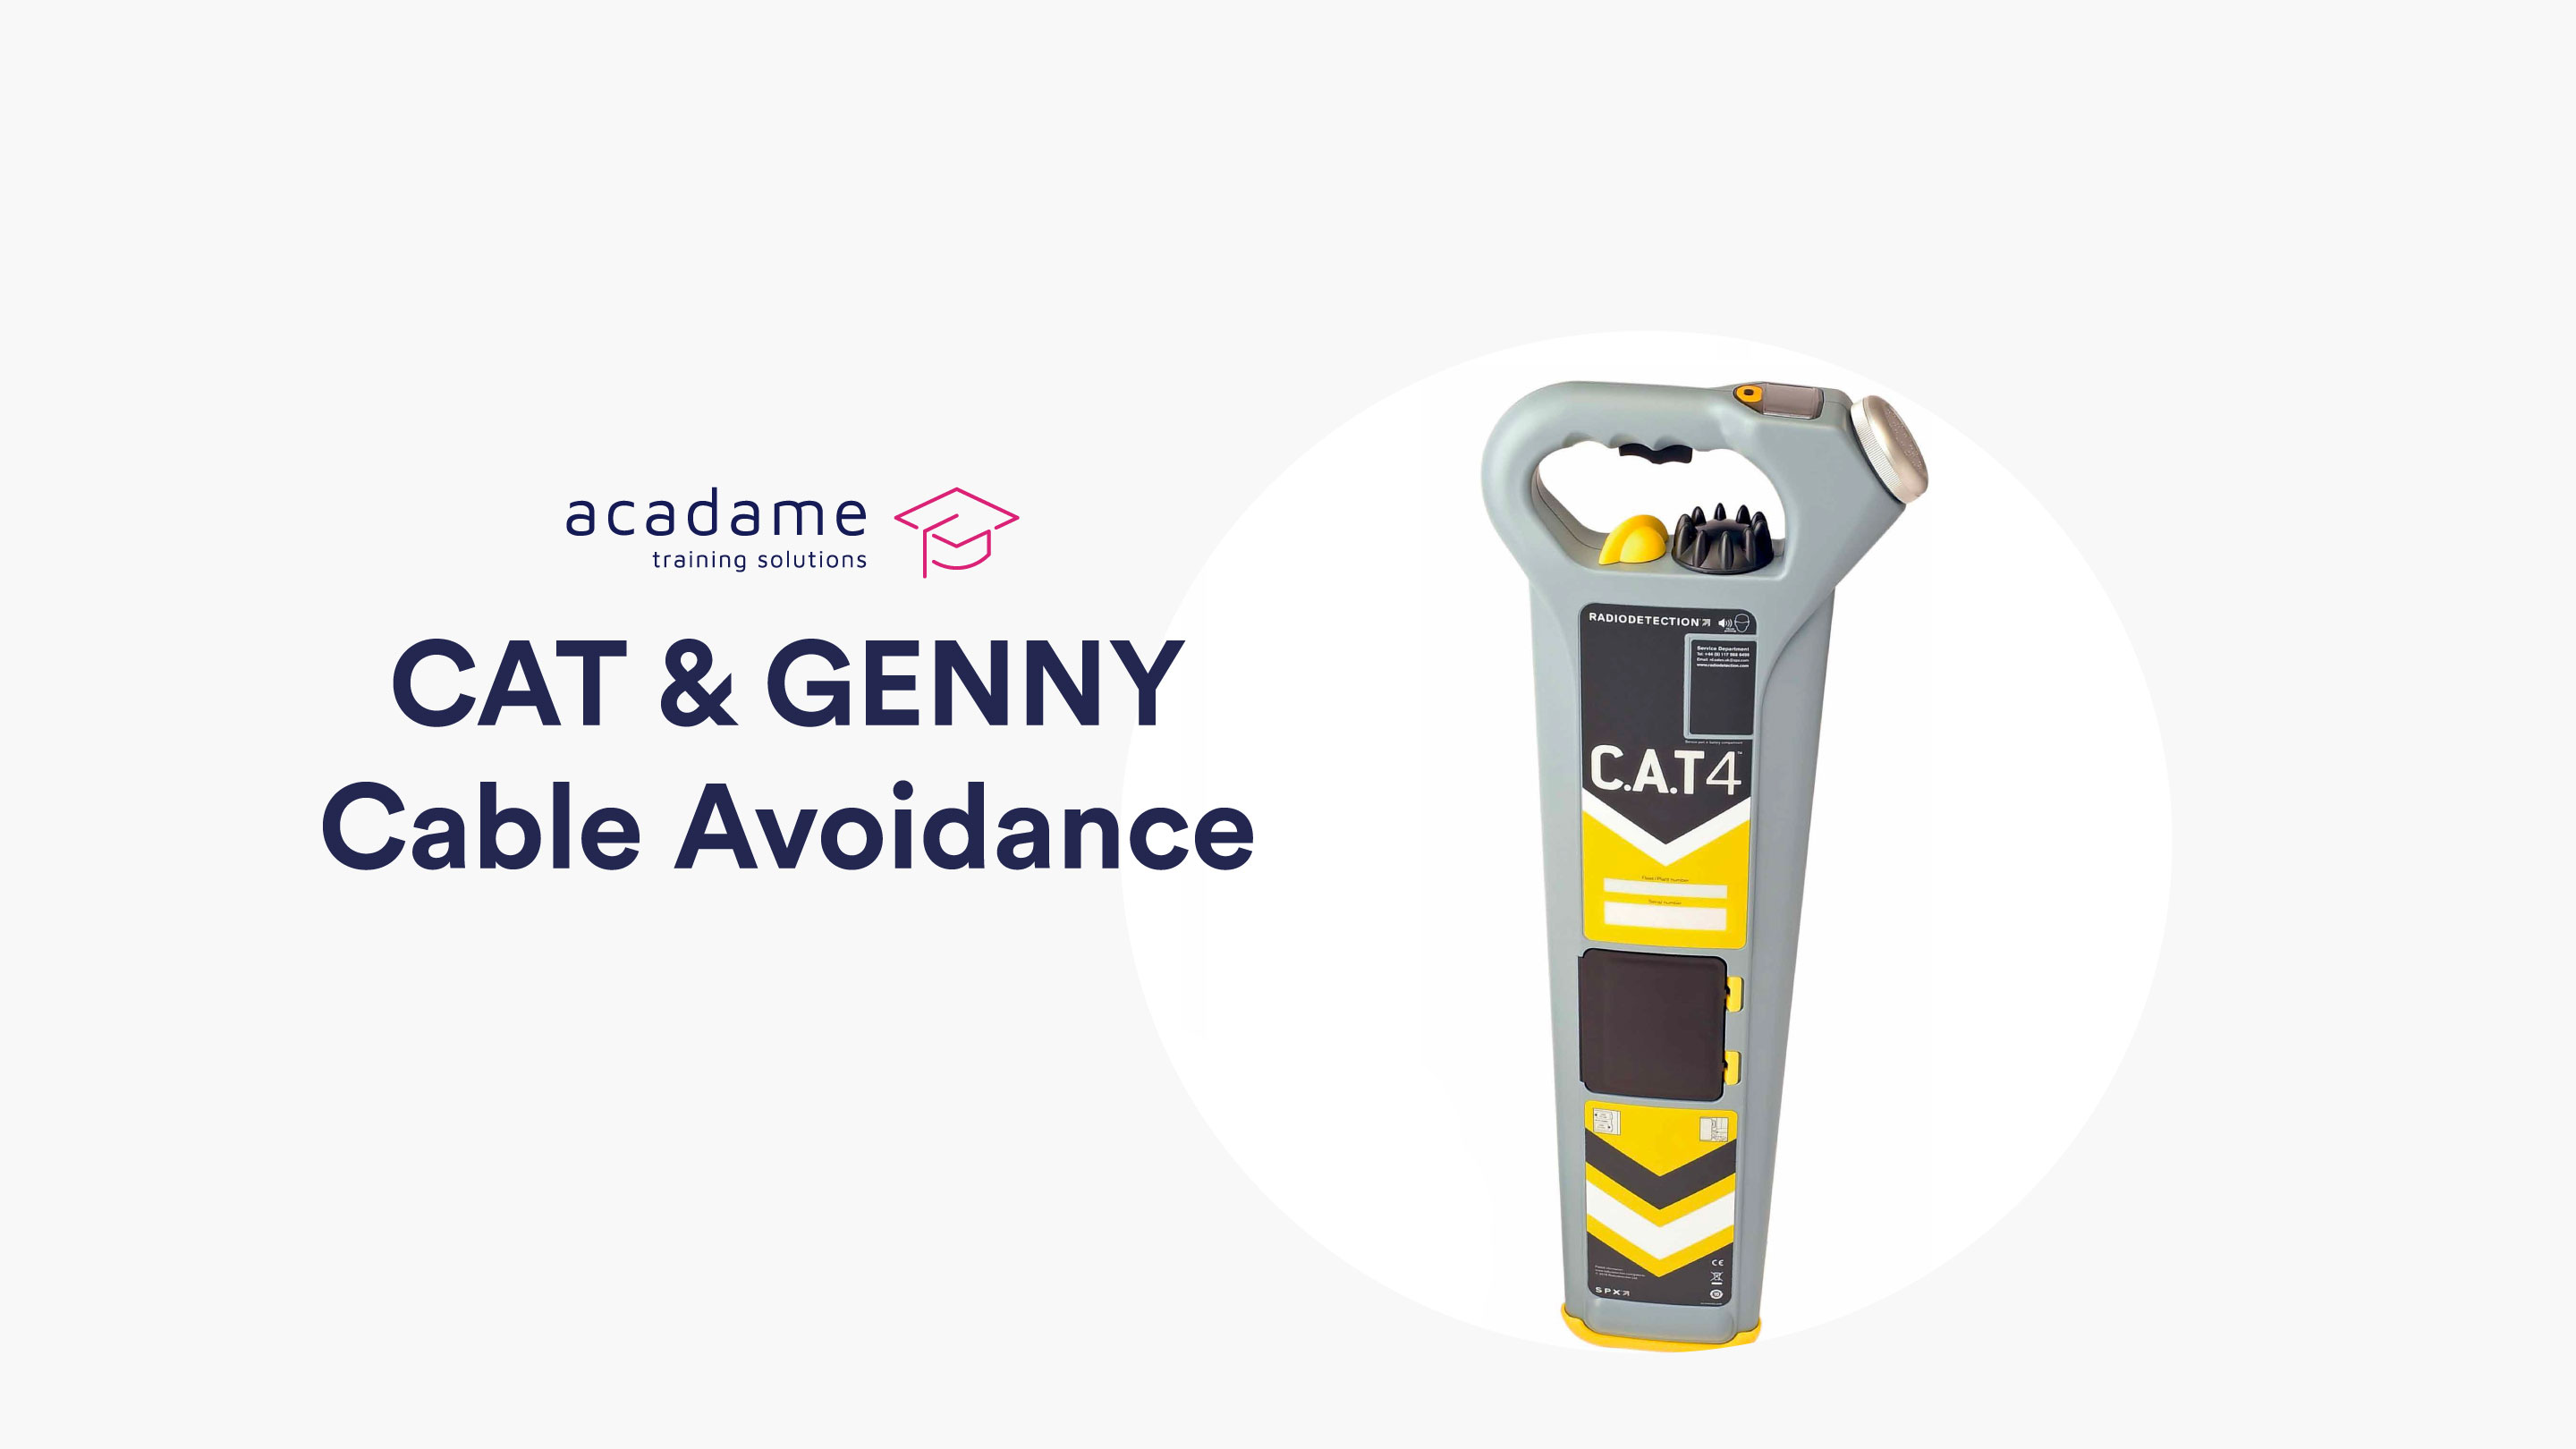 cat_genny_cable_avoidance_training_course_in_stoke_on_trent.jpg